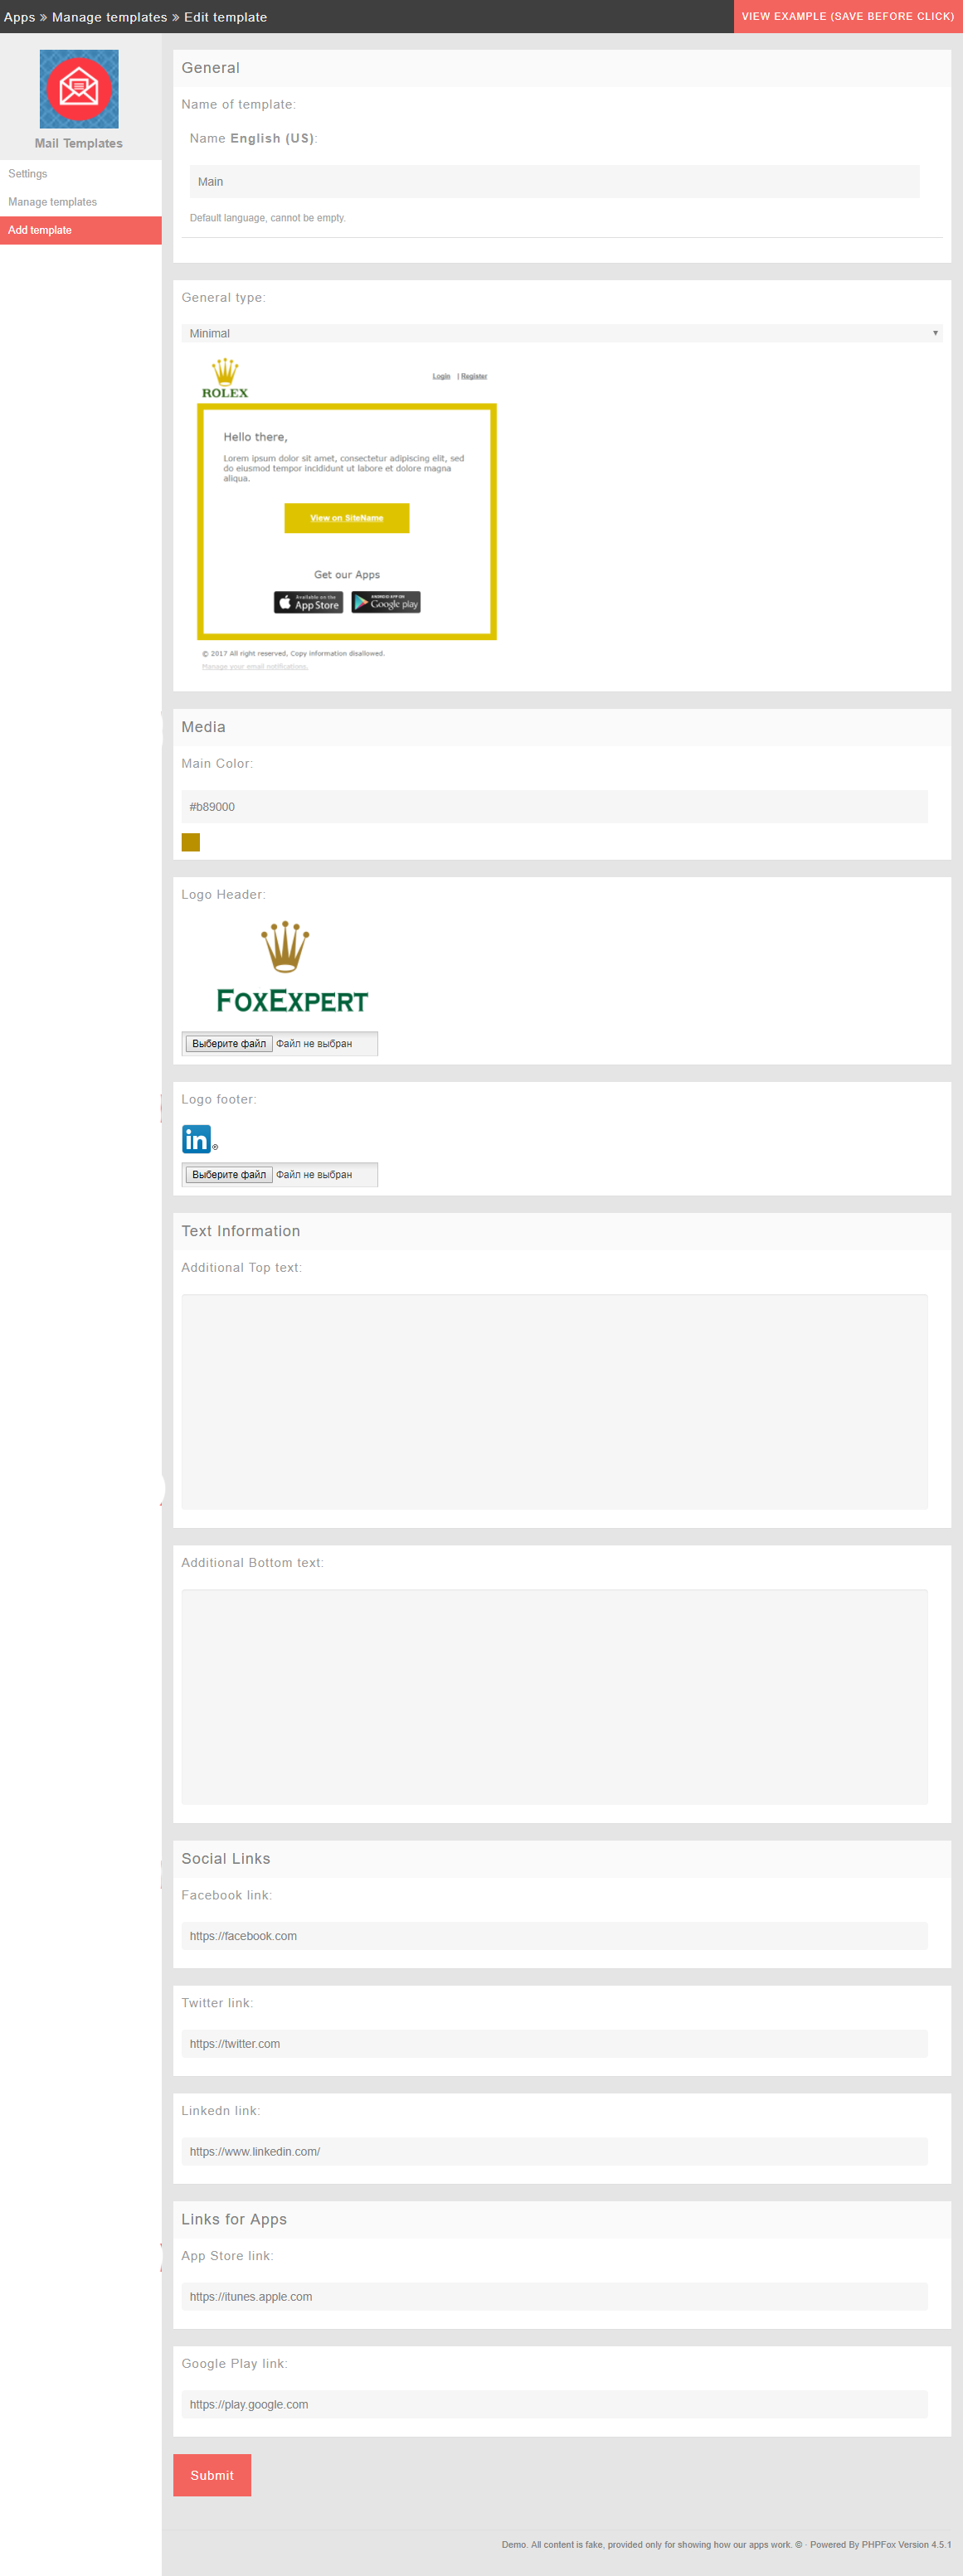 Mail Templates 4.61 - plugin for PhpFox.